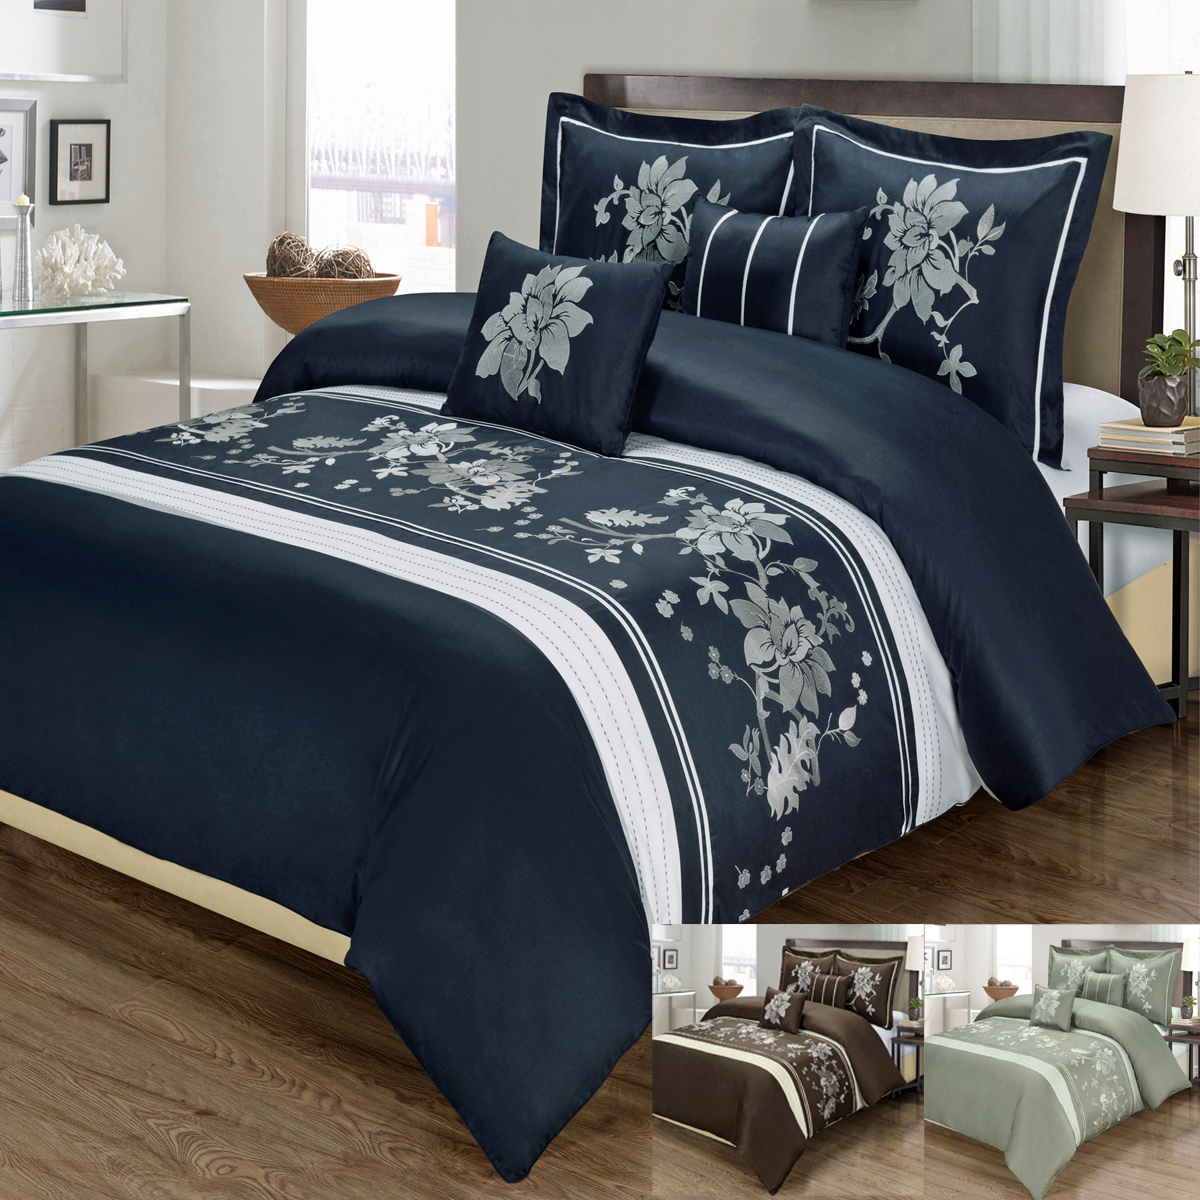 Royal Tradition. Duvet cover Details; Duvet material :100% Cotton; Style: Embroidered; Thread count: 300; Duvet cover has 4 inner ties; Duvet cover has self piping 4 sides; Hidden zipper closure by footer. Care Instructions: Machine washable in cold water.